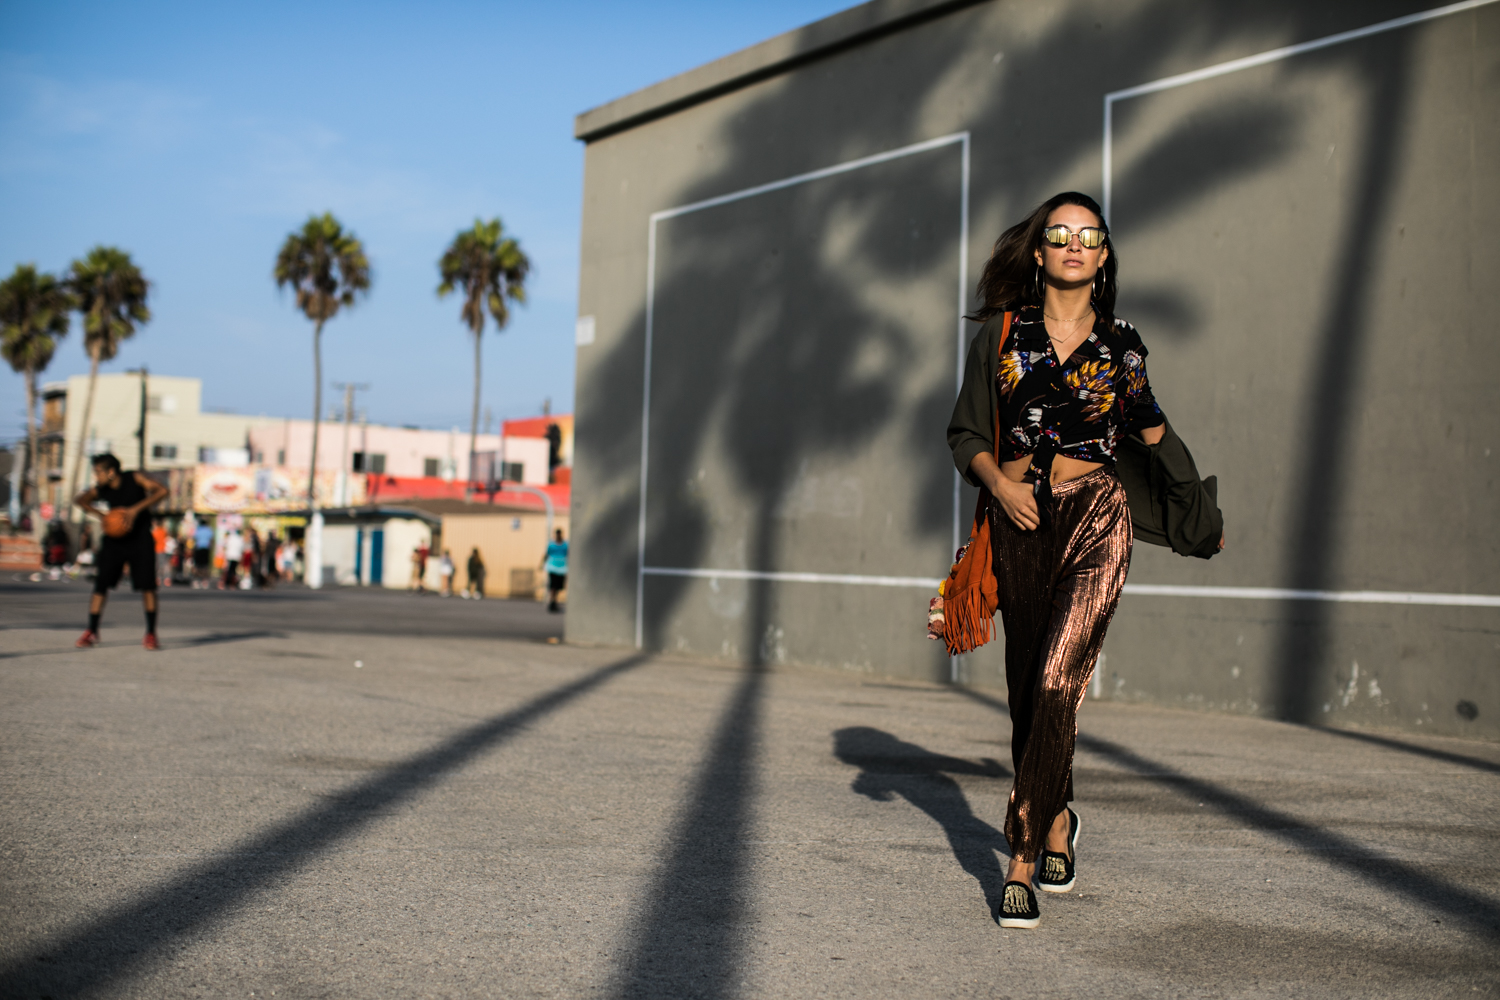 Fashion photographer Samuel Black shoots an editorial with model and streetstyle blogger Xenia Mz in Venice Beach, California